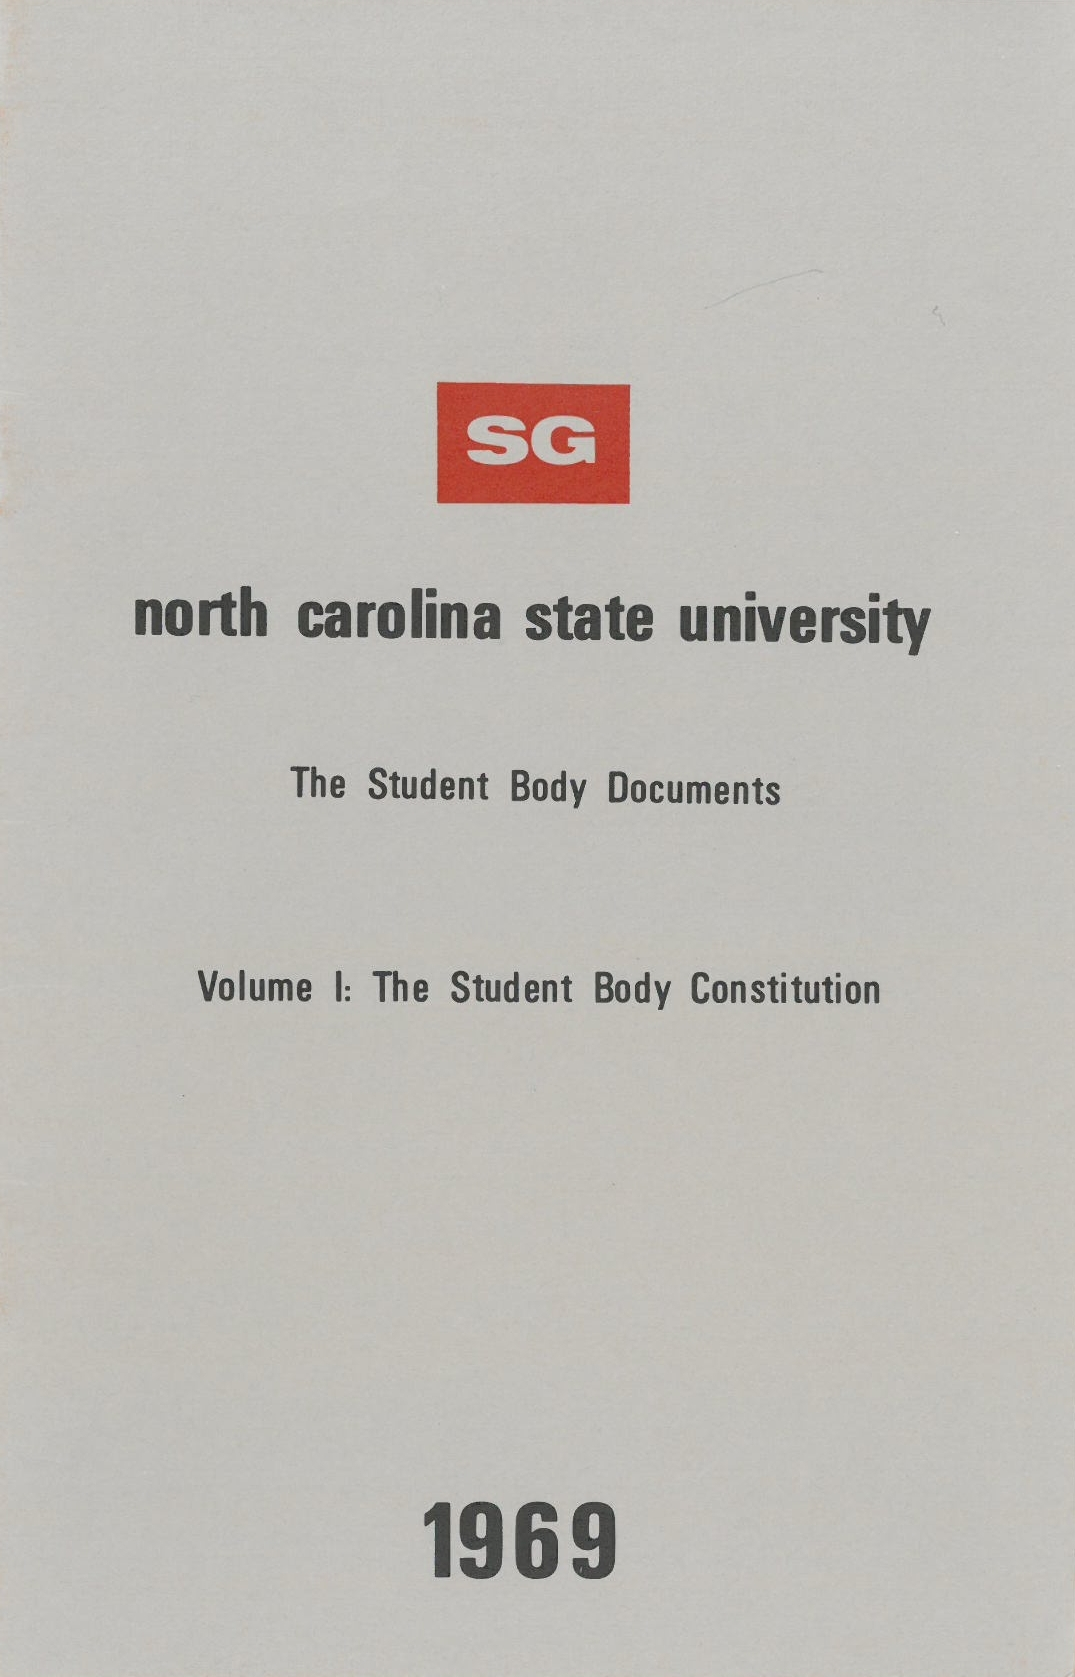 NC State students approved a new Student Government constitution in March 1969.